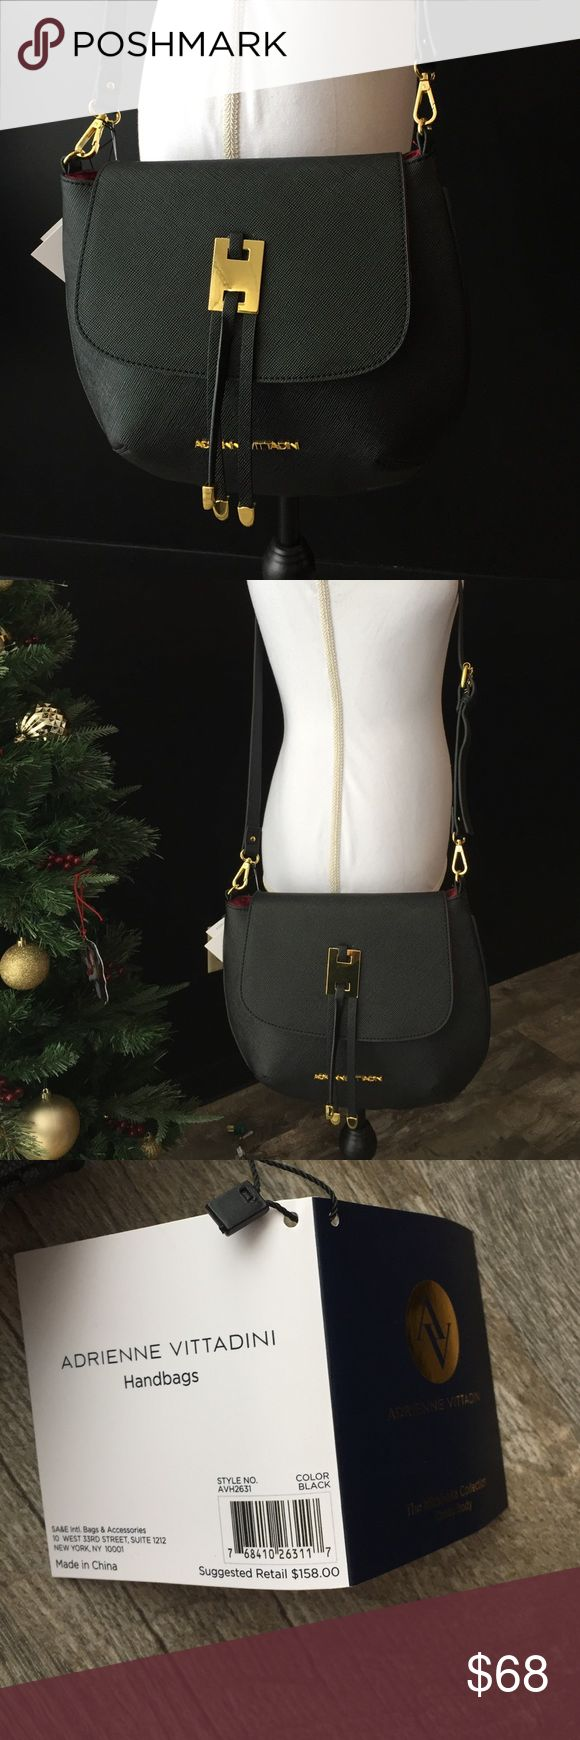 Adrienne vittadini crossbody purse handbag nwt Adrienne vittadini crossbody purse handbag nwt black had a snap closure soft pu material fully lined interior with pocket adjustable removable strap . New with tags retail 158   12x11 tall Adrienne Vittadini Bags Crossbody Bags